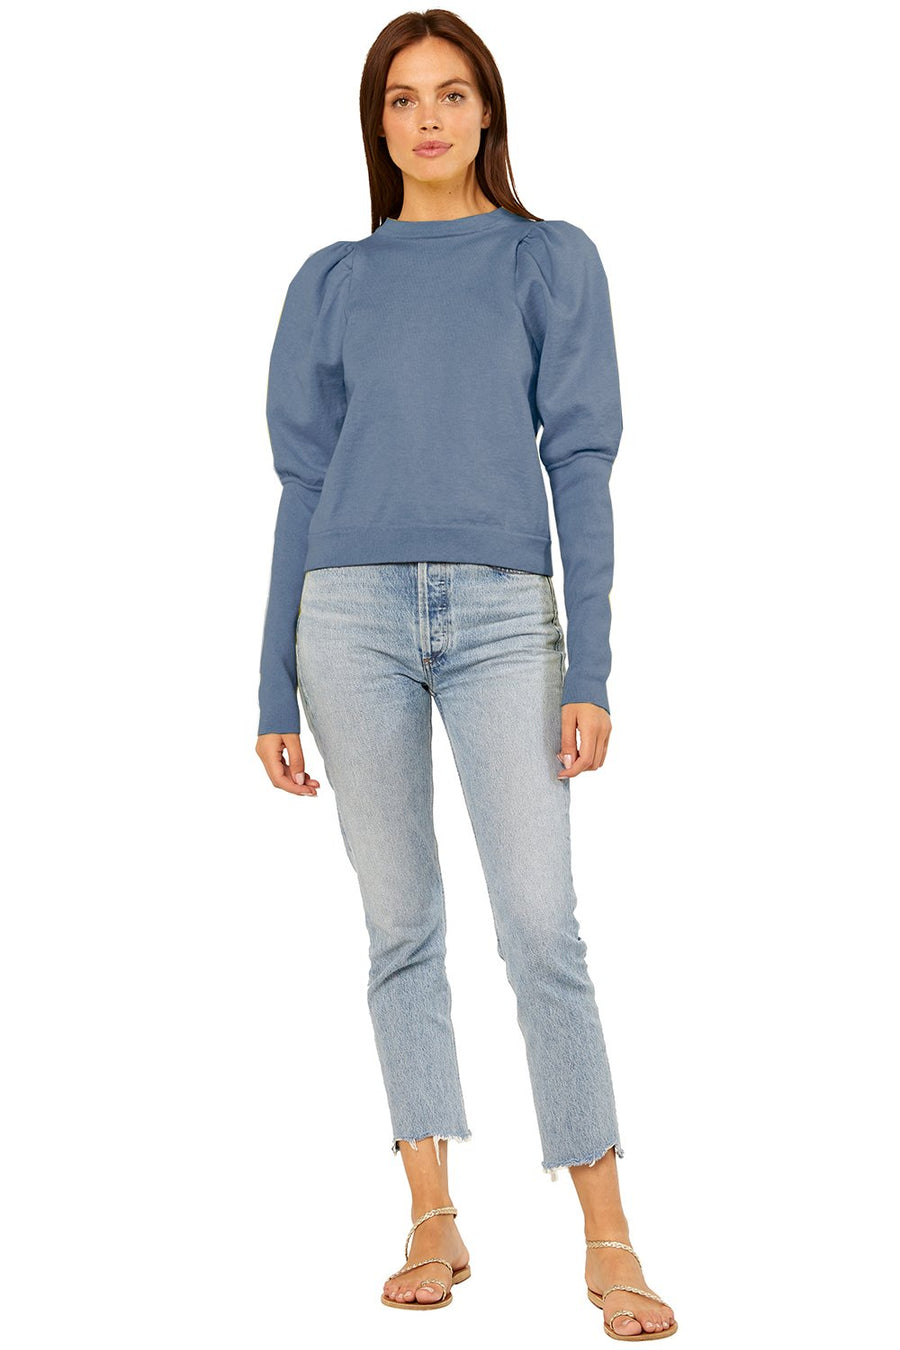 Misa Kali Sweater in Denim